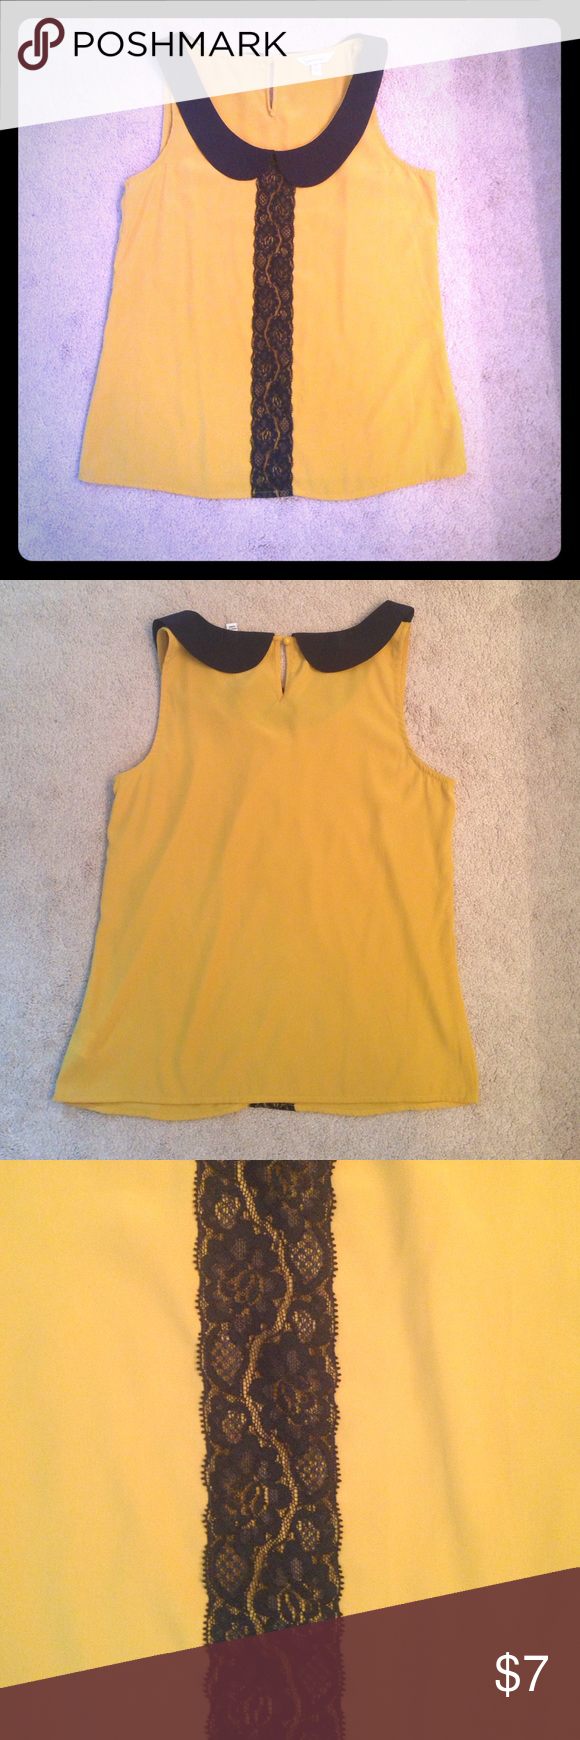 Mustard yellow tank with navy blue lace this tank is mustard yellow